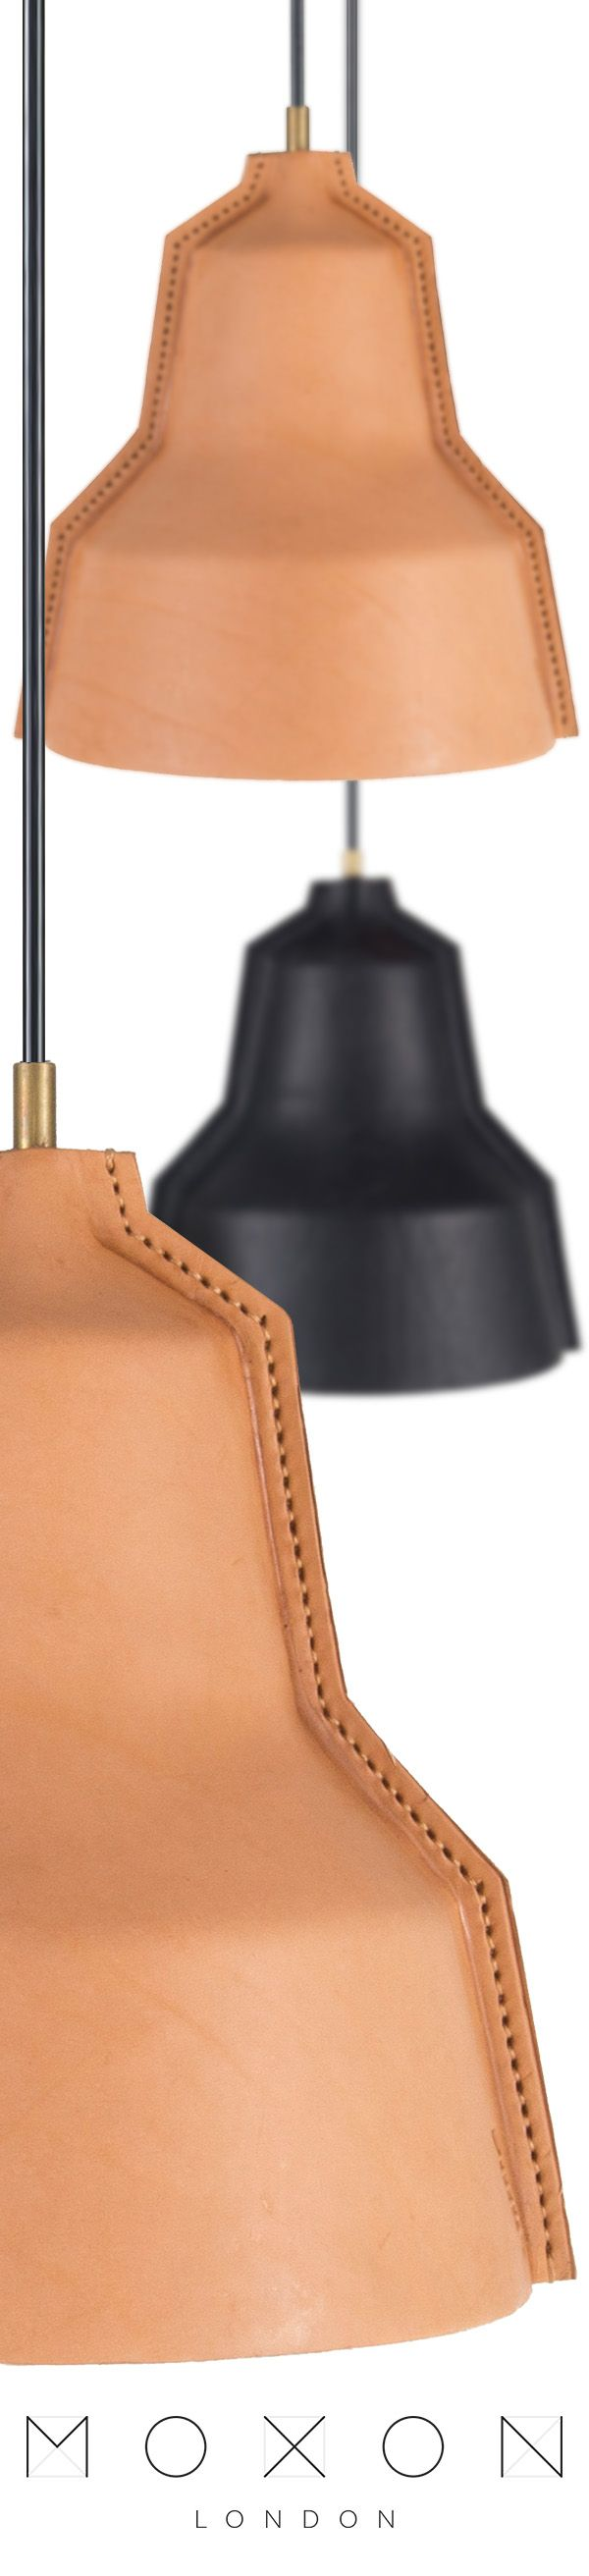 Hand stitched leather lamp shades with brass fittings from MOXON London. These beautiful leather lamps have been hand crafted by artisans using the finest leather.  Available in natural tan and black leather.